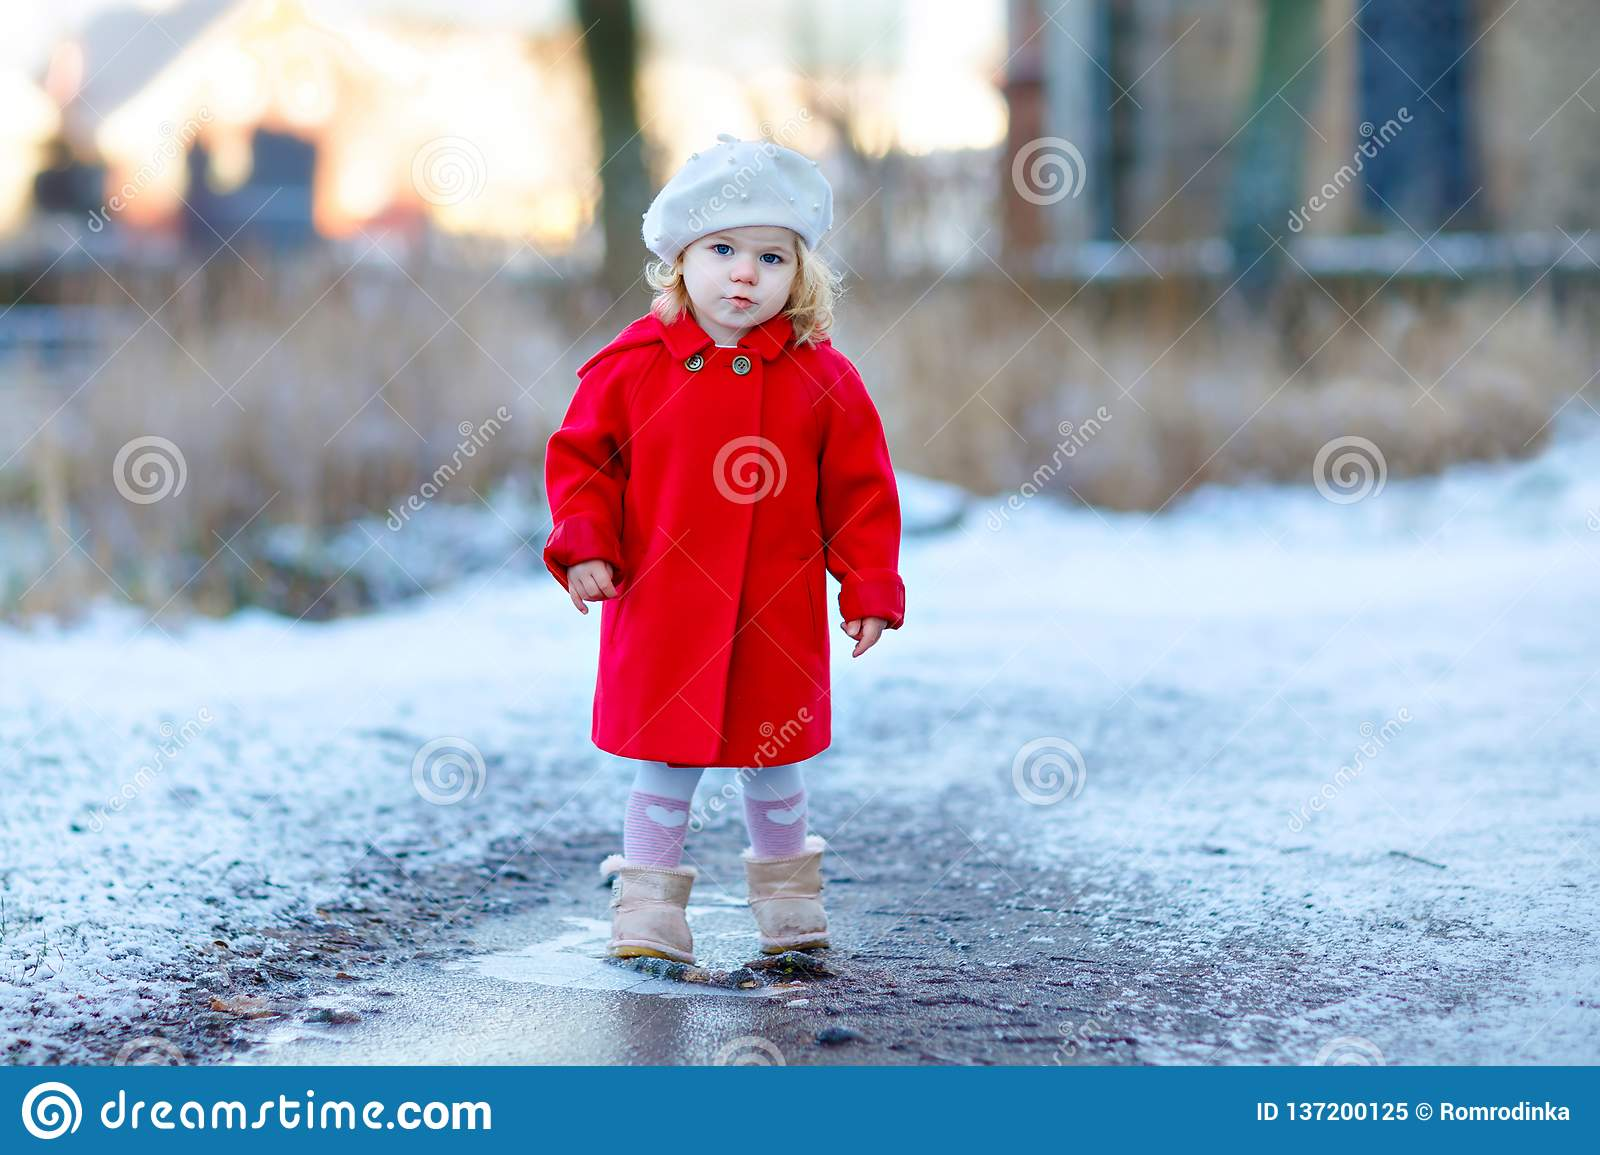 317c3186a9a Outdoor winter portrait of little cute toddler girl in red coat and white  fashion hat barret